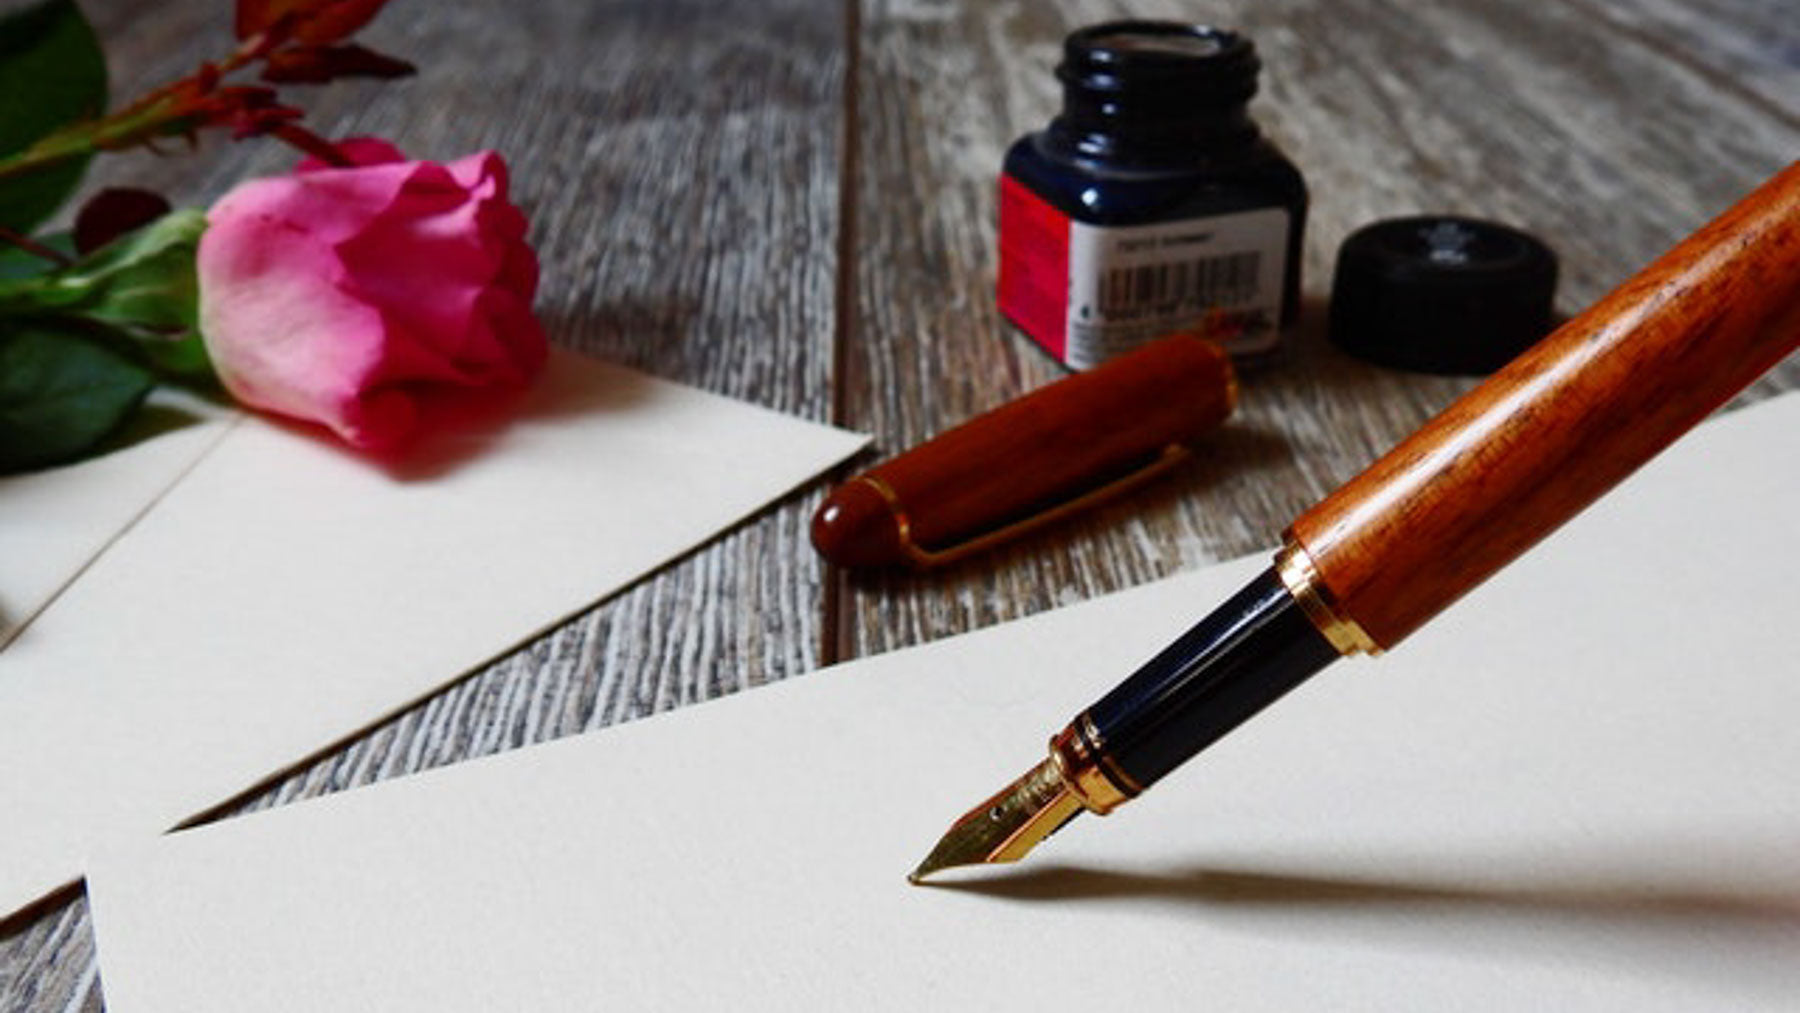 letter writing equipment with a rose